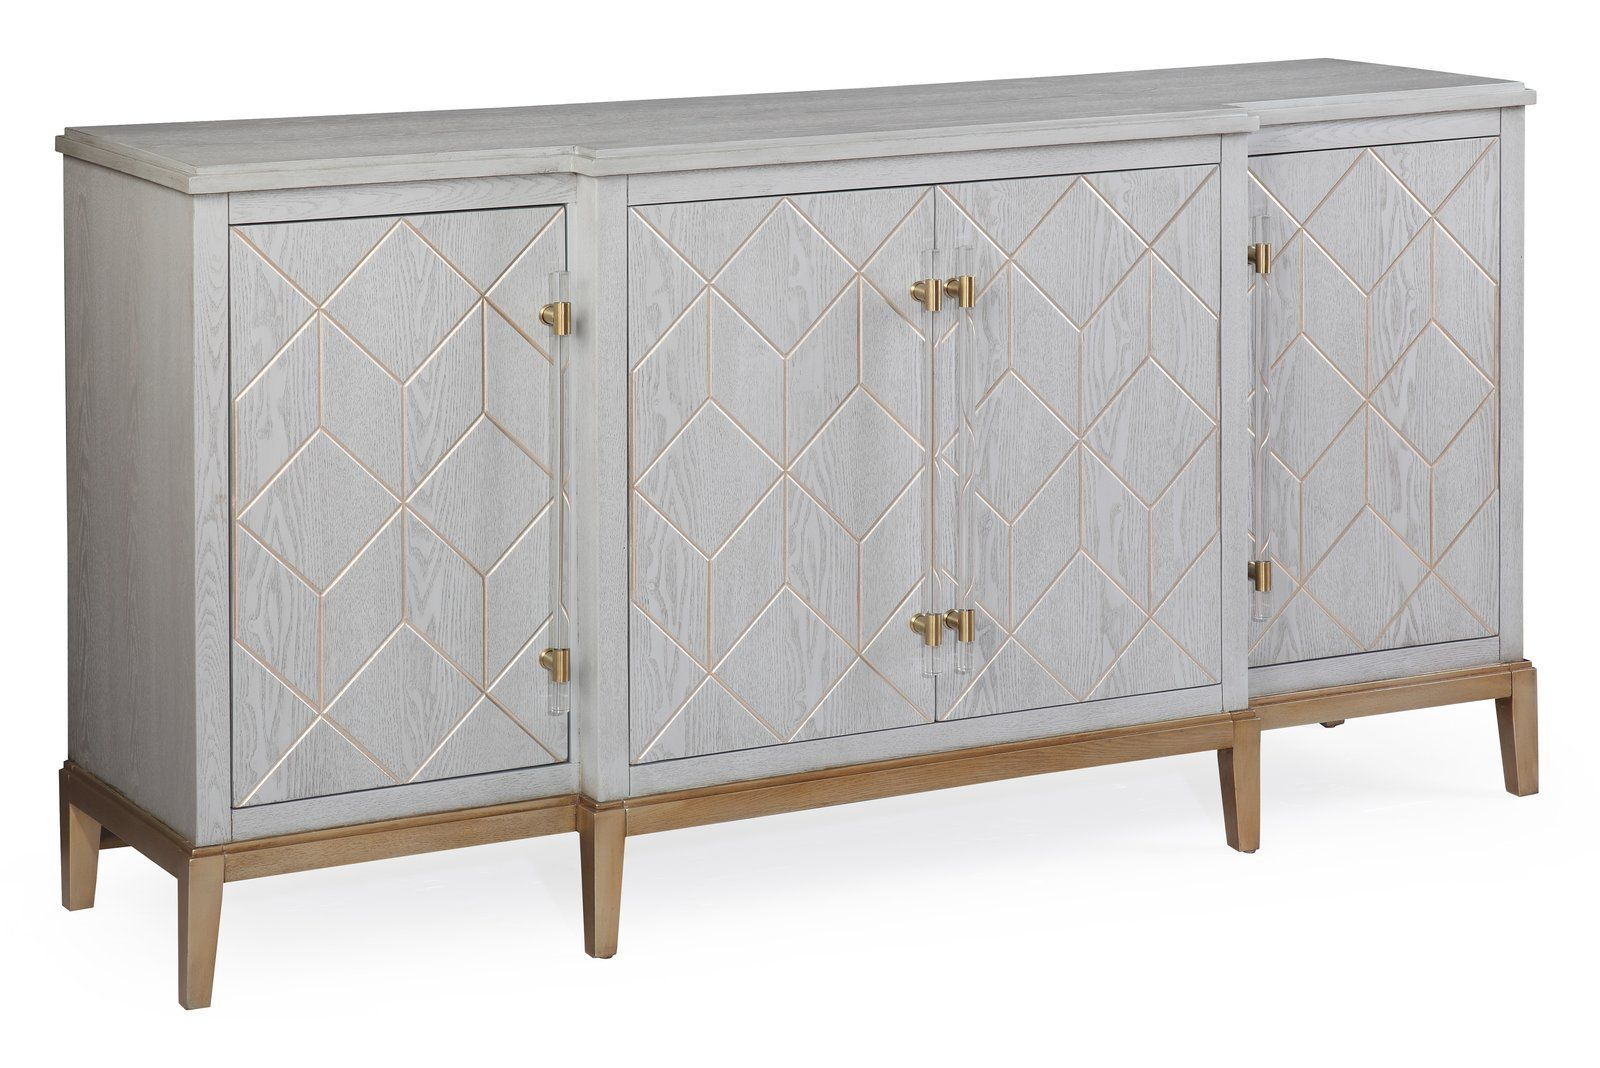 Rosson Sideboard | Dressers & Console Tables | Dining Room With Regard To Rosson Sideboards (Gallery 3 of 30)